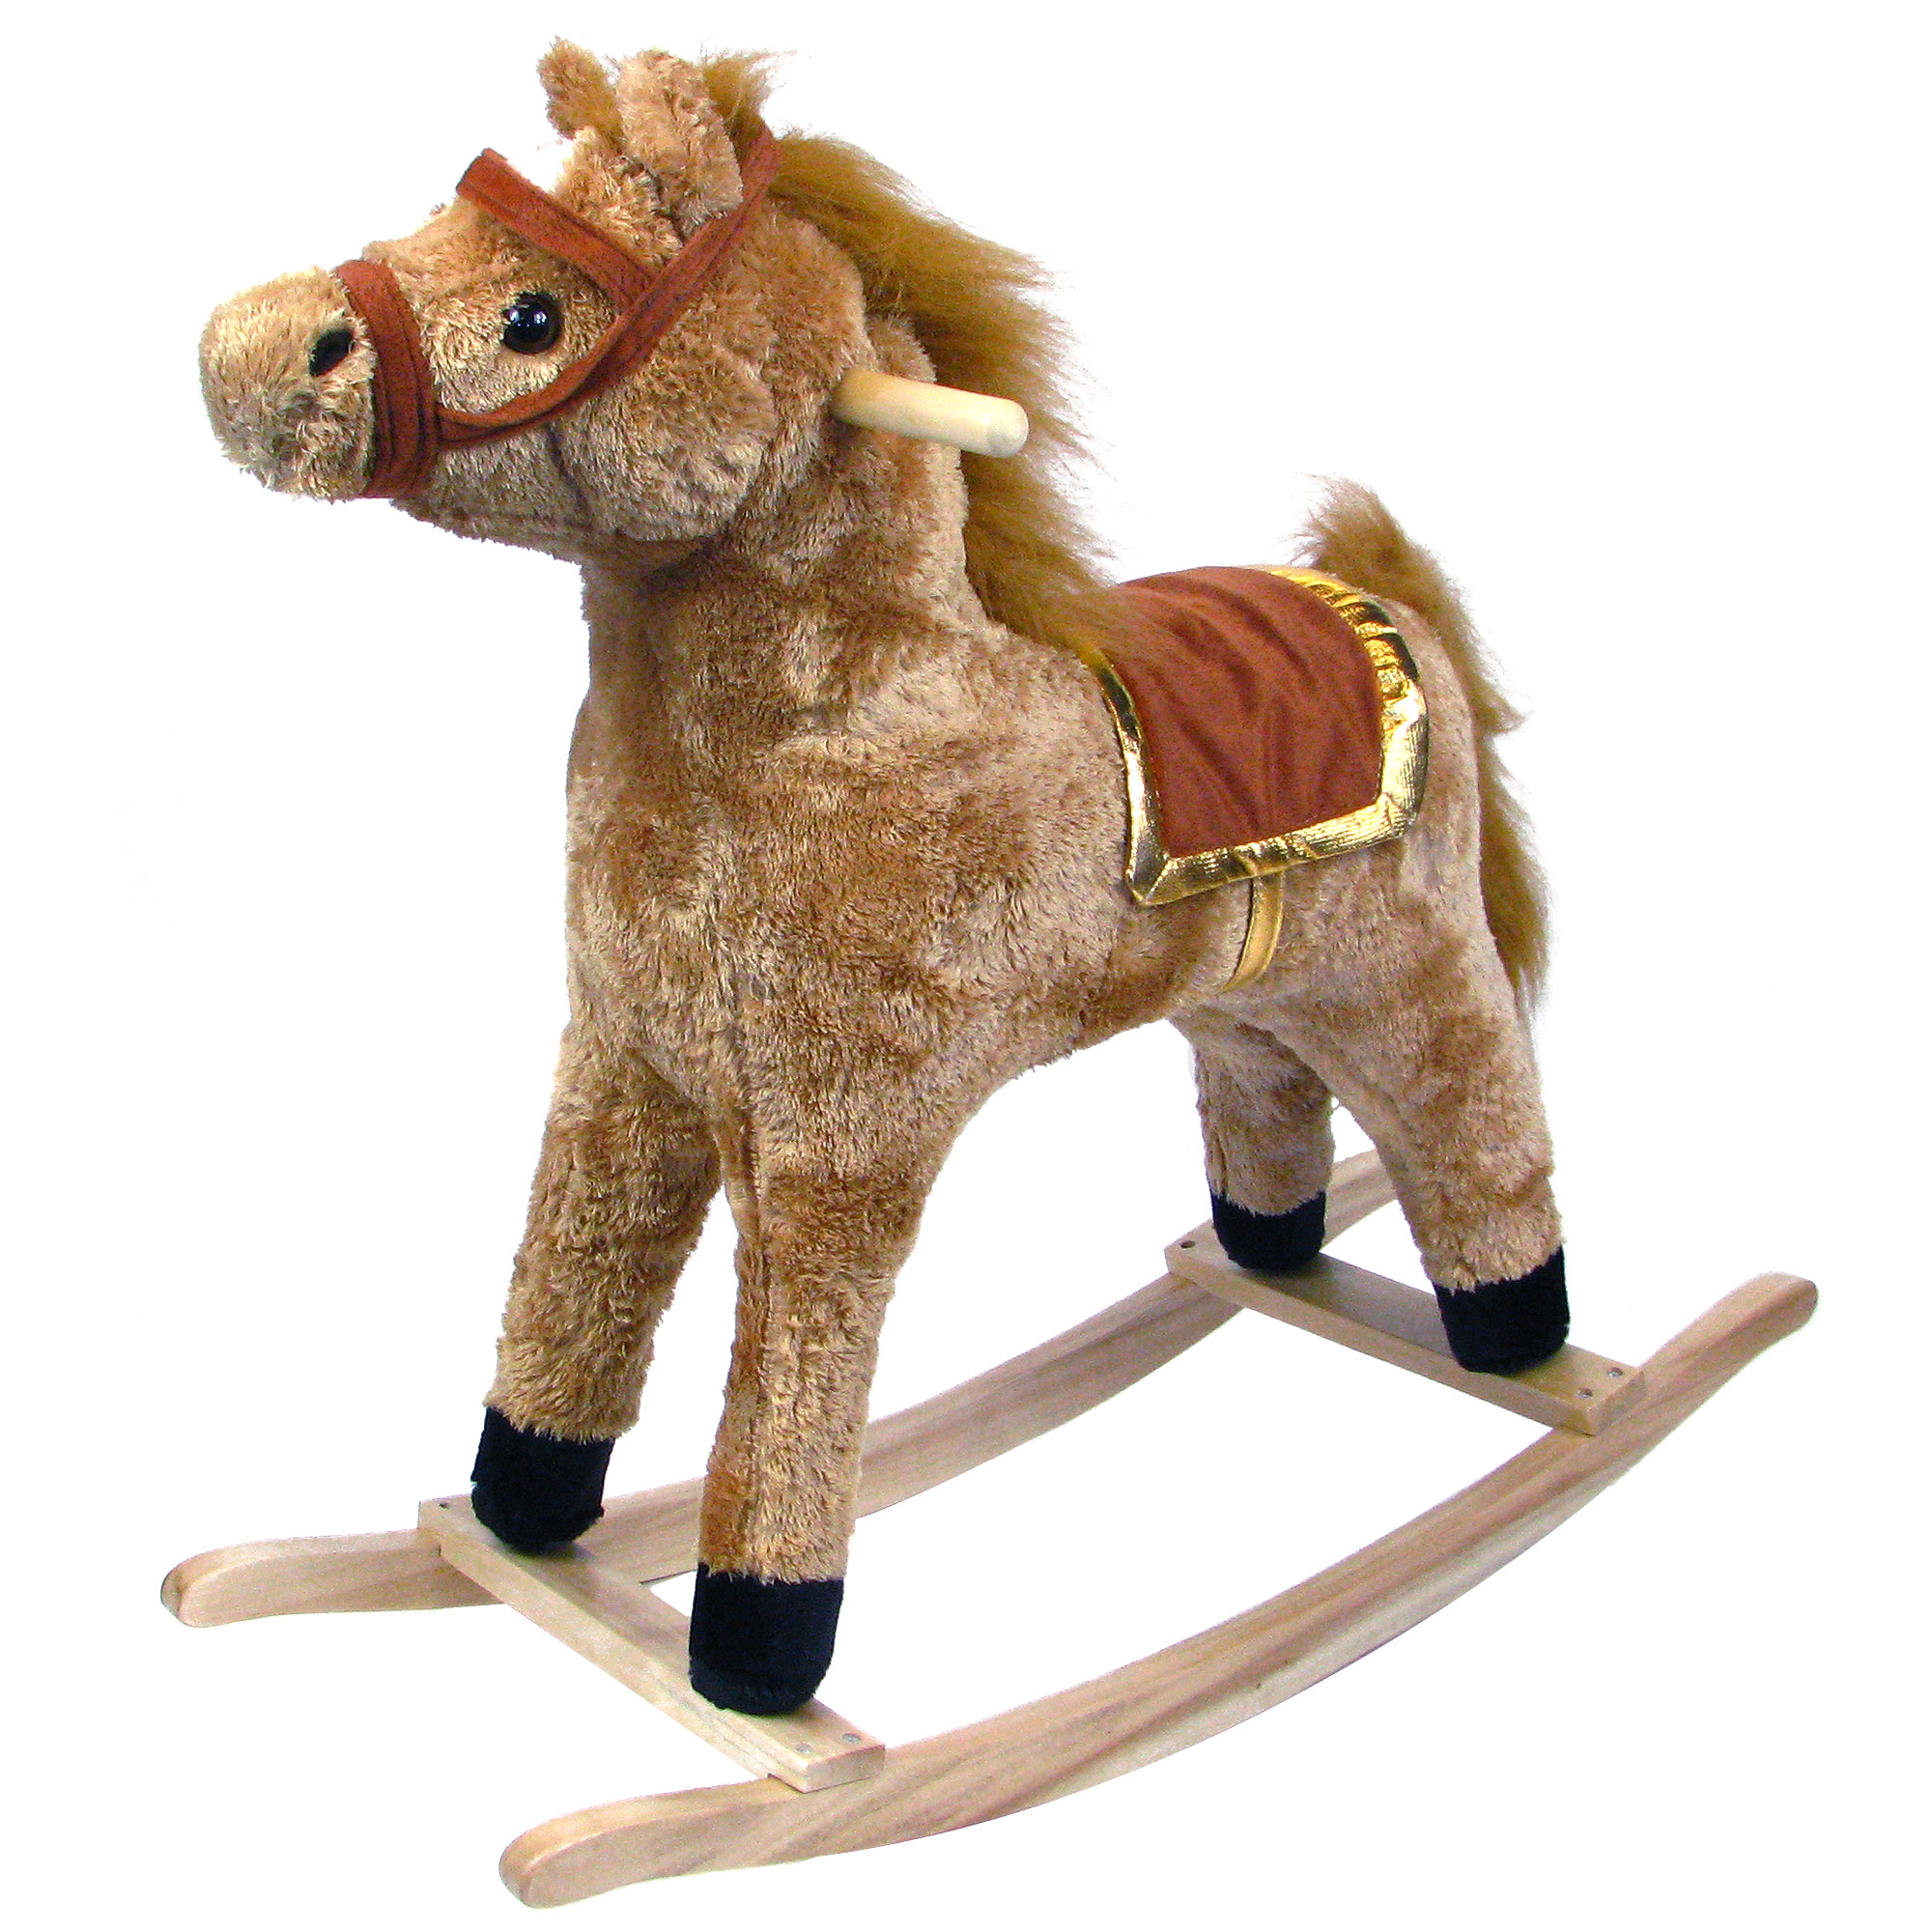 Plush Rocking Horse, Brown Ride On Rocking Animal Toy by Happy Trails